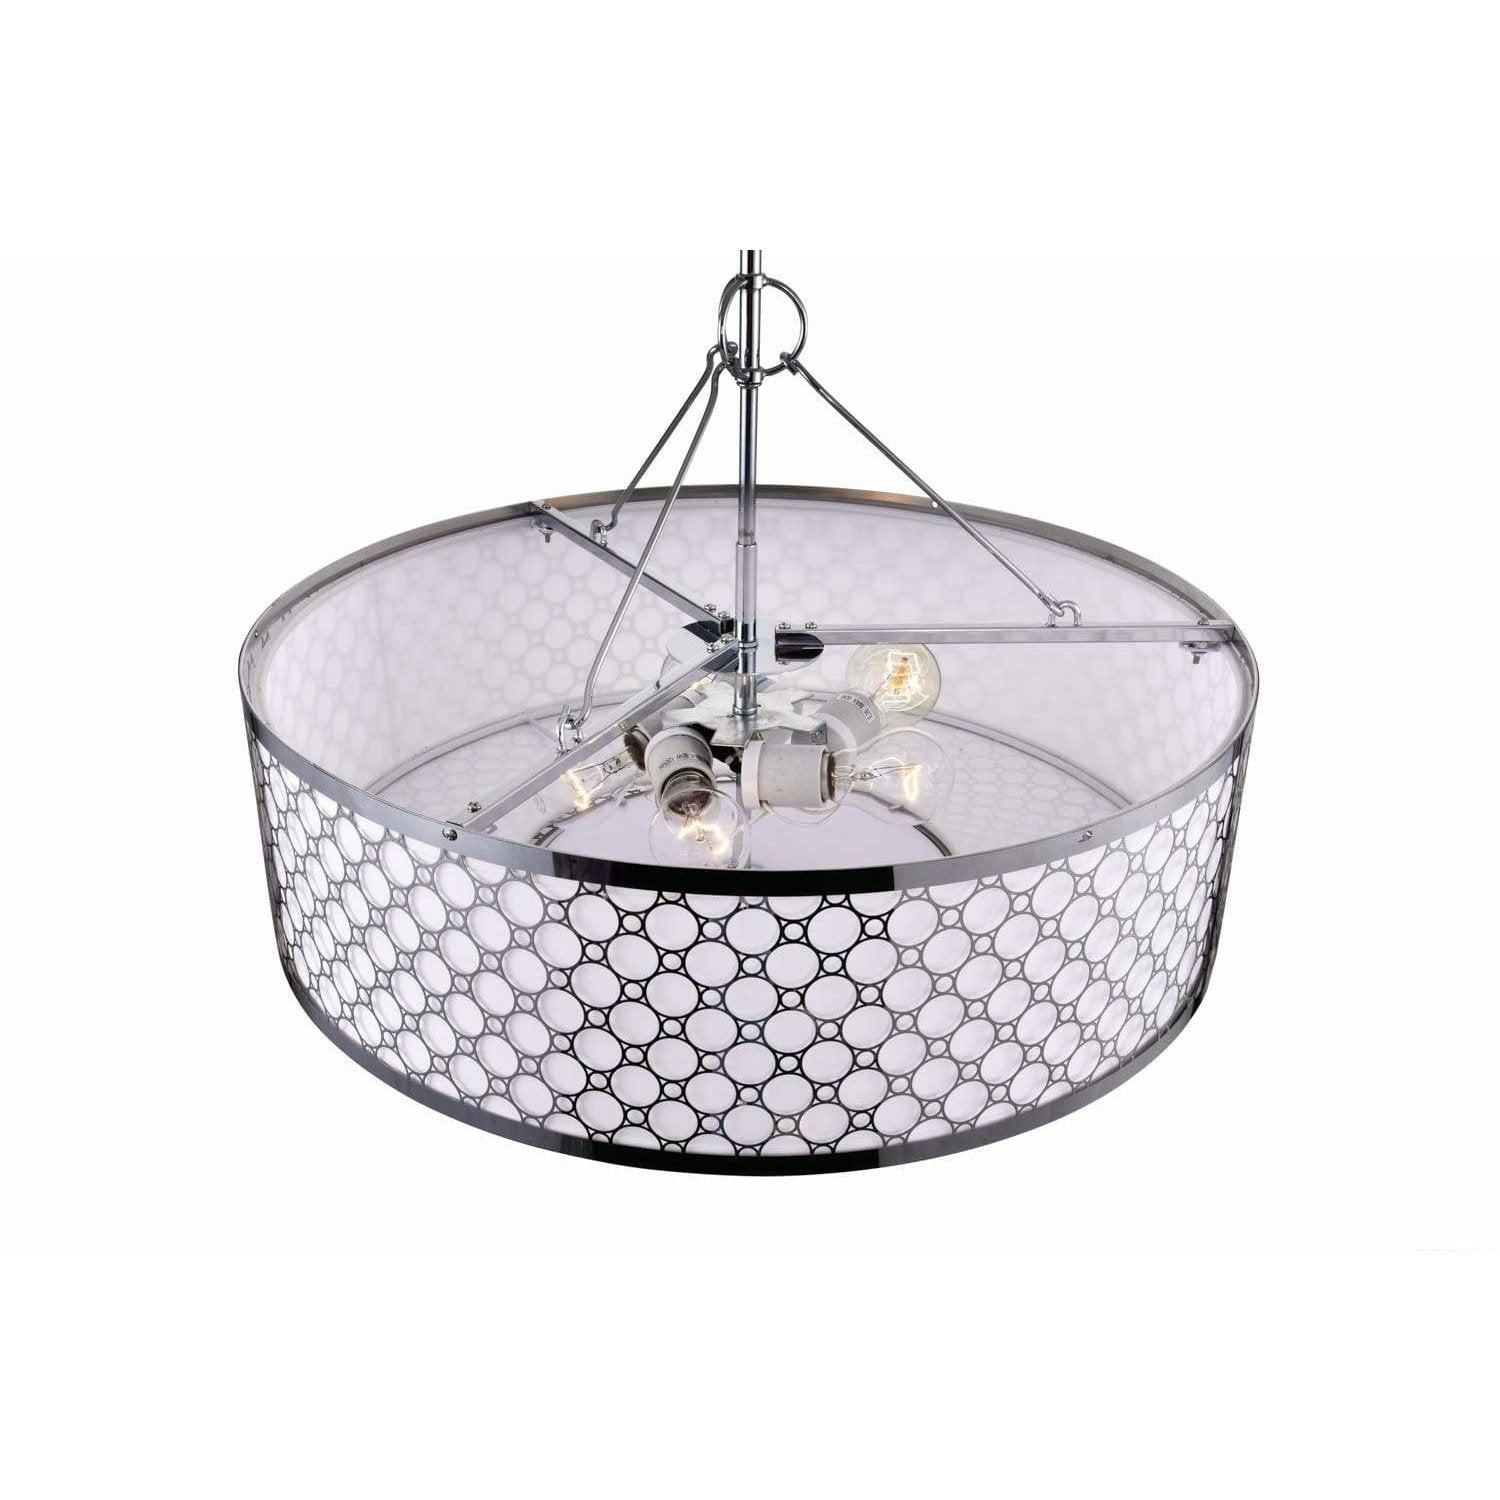 CWI Lighting Chandeliers Chrome Swiss 4 Light Down Chandelier with Chrome finish by CWI Lighting 5504P16ST